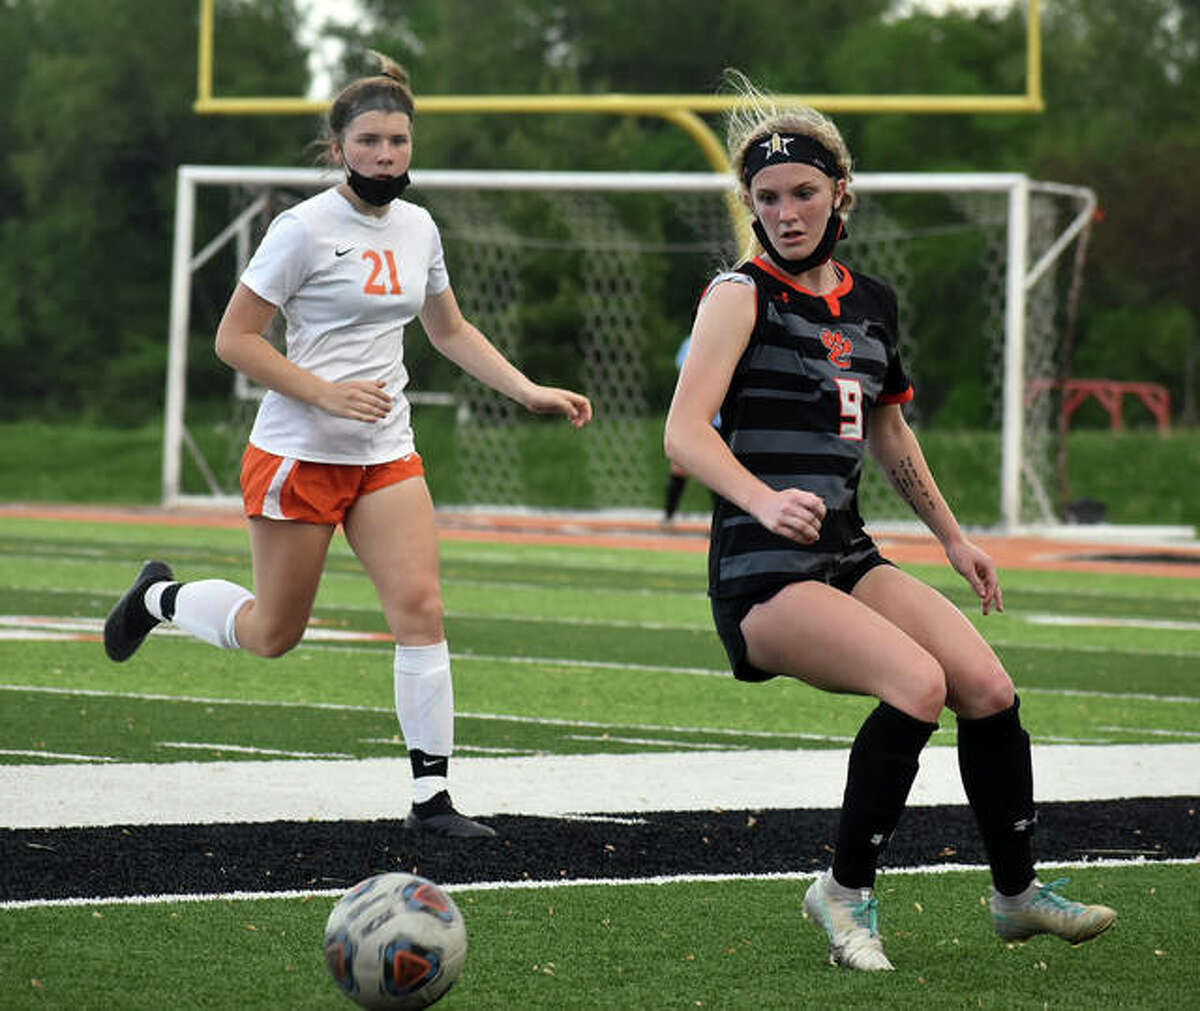 Edwardsville's Payton Federmann, right, prepares to play the ball near the sideline during the second half of Monday's game against Waterloo inside the District 7 Sports Complex.